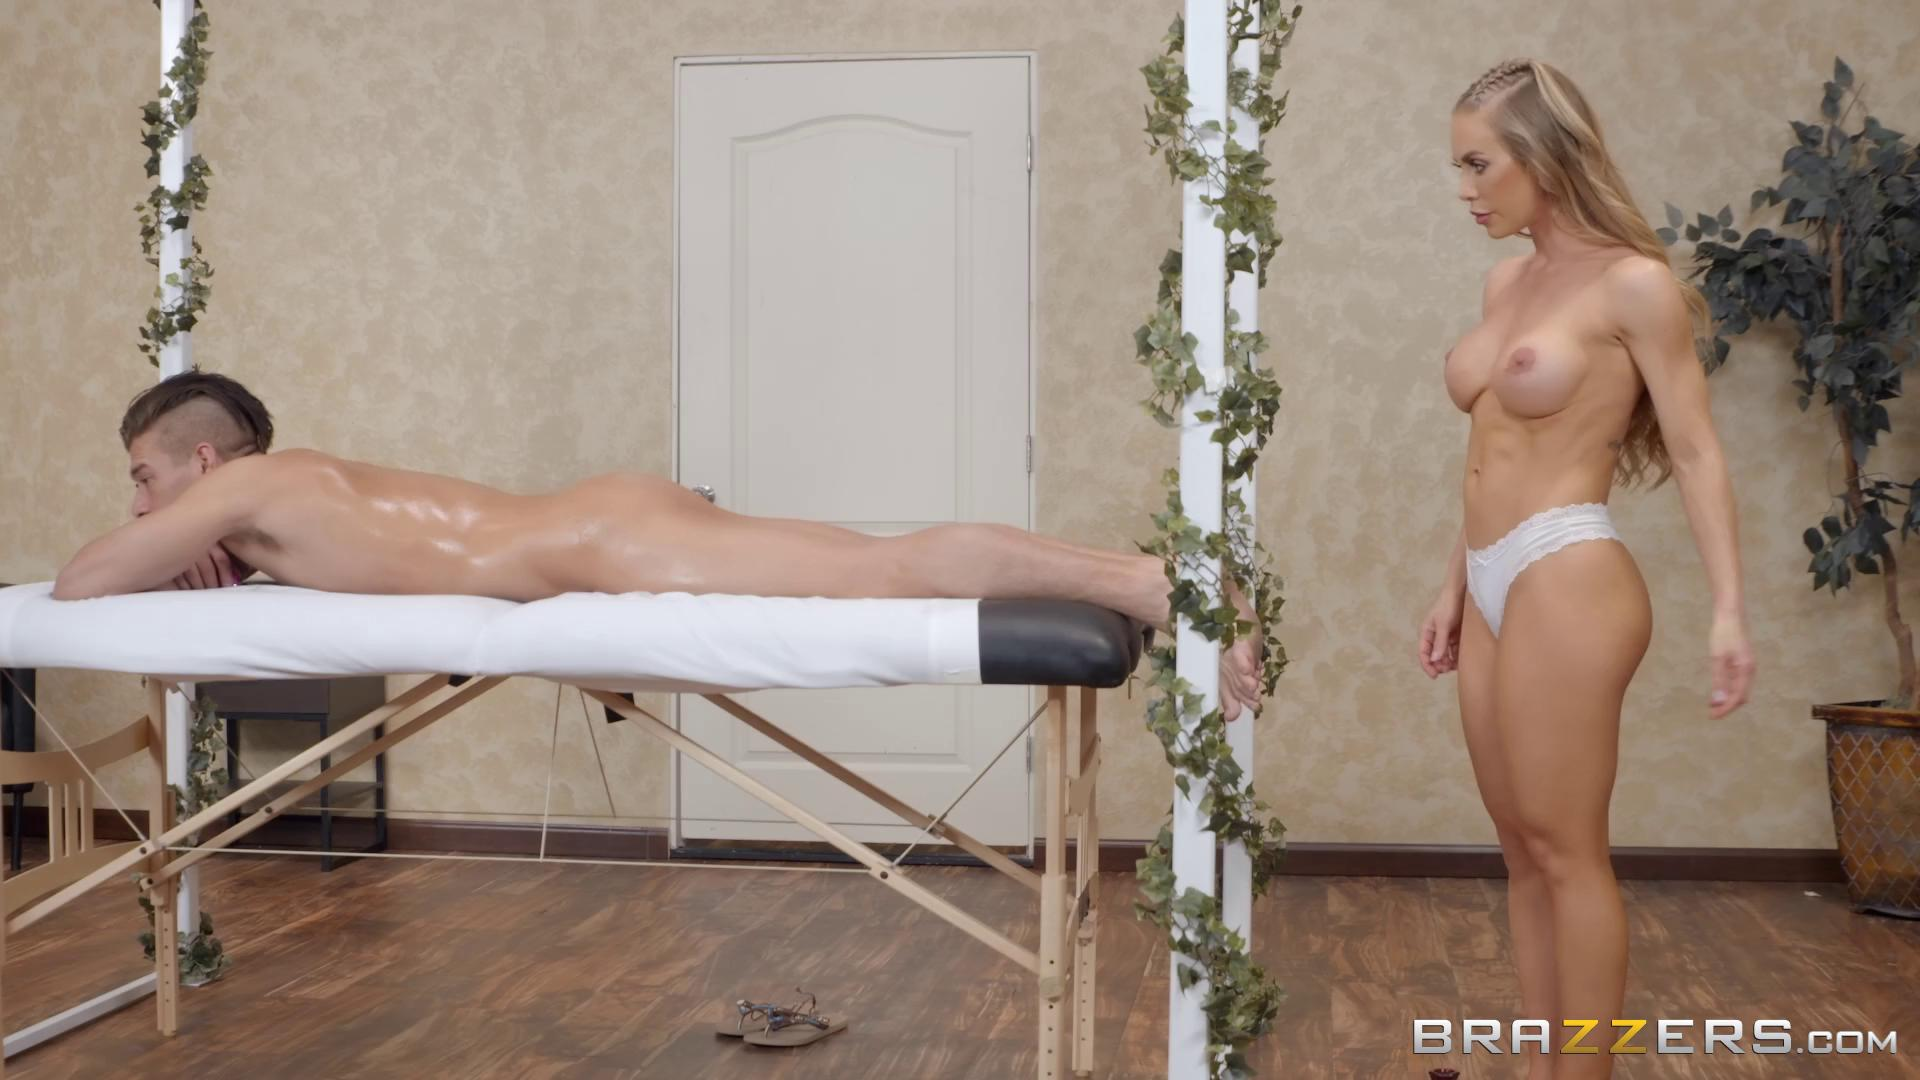 DirtyMasseur – Nicole Aniston Getting Off On The Job